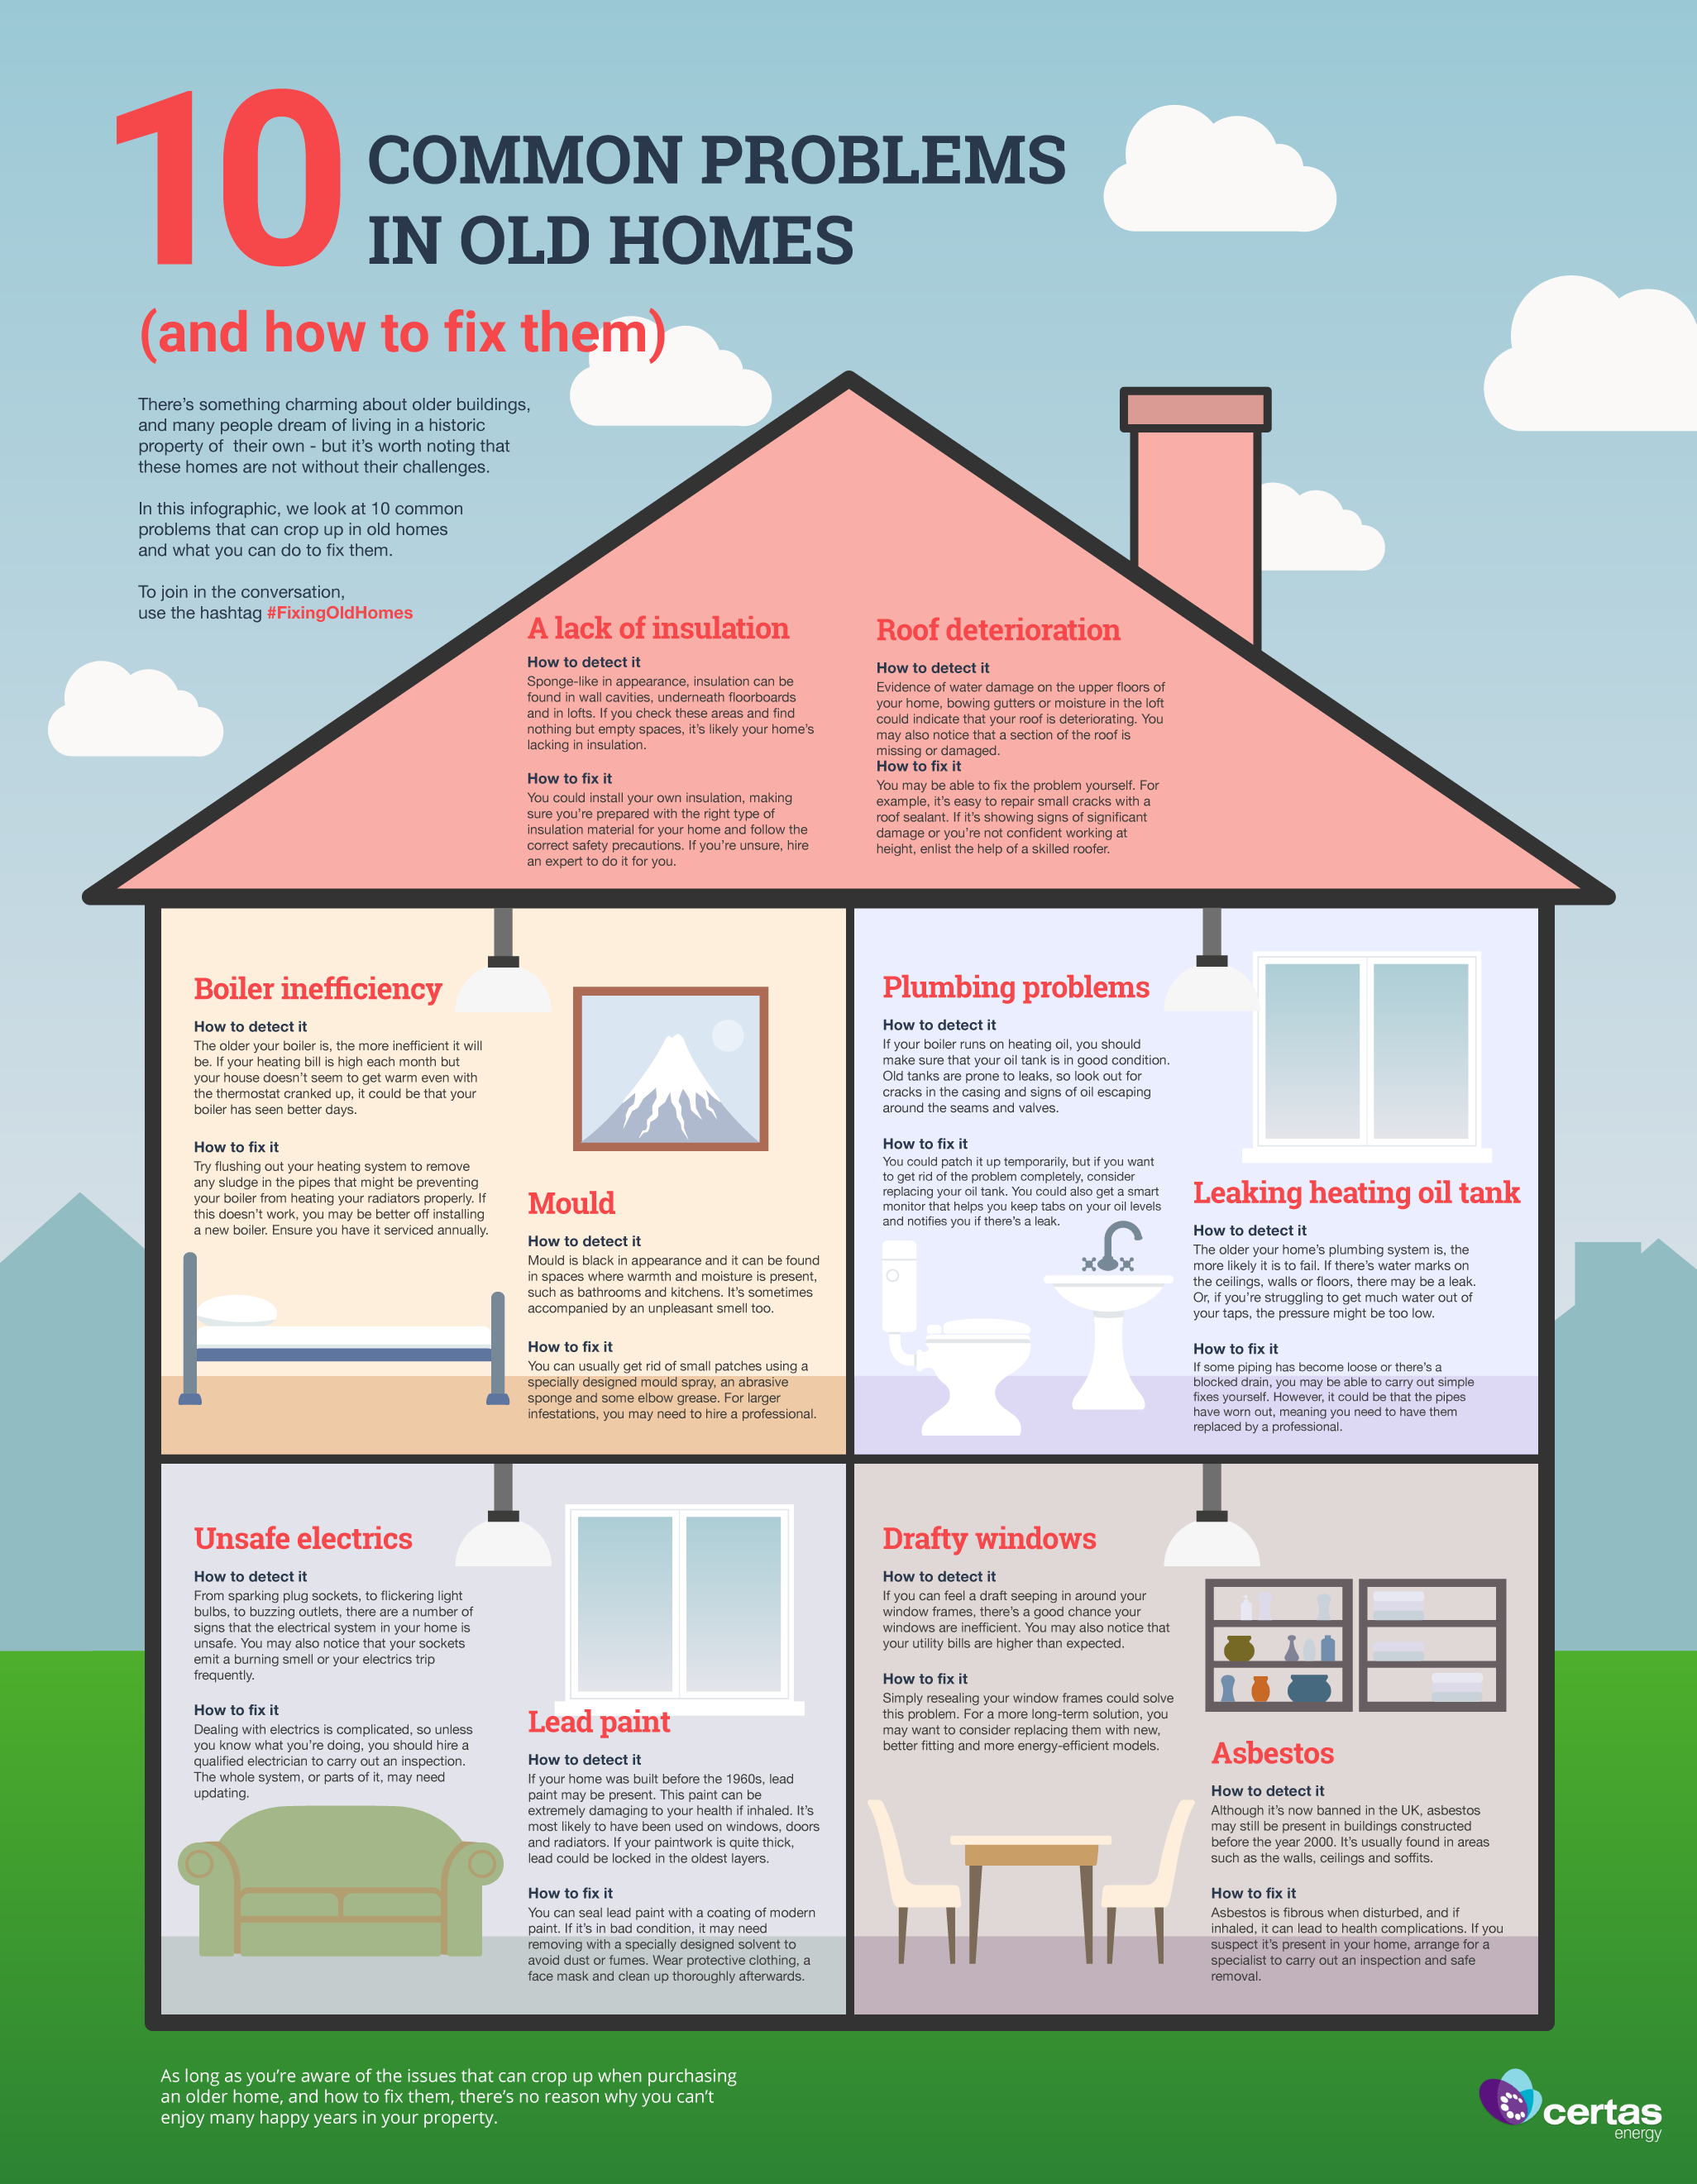 10-common-problems-in-old-homes_V2